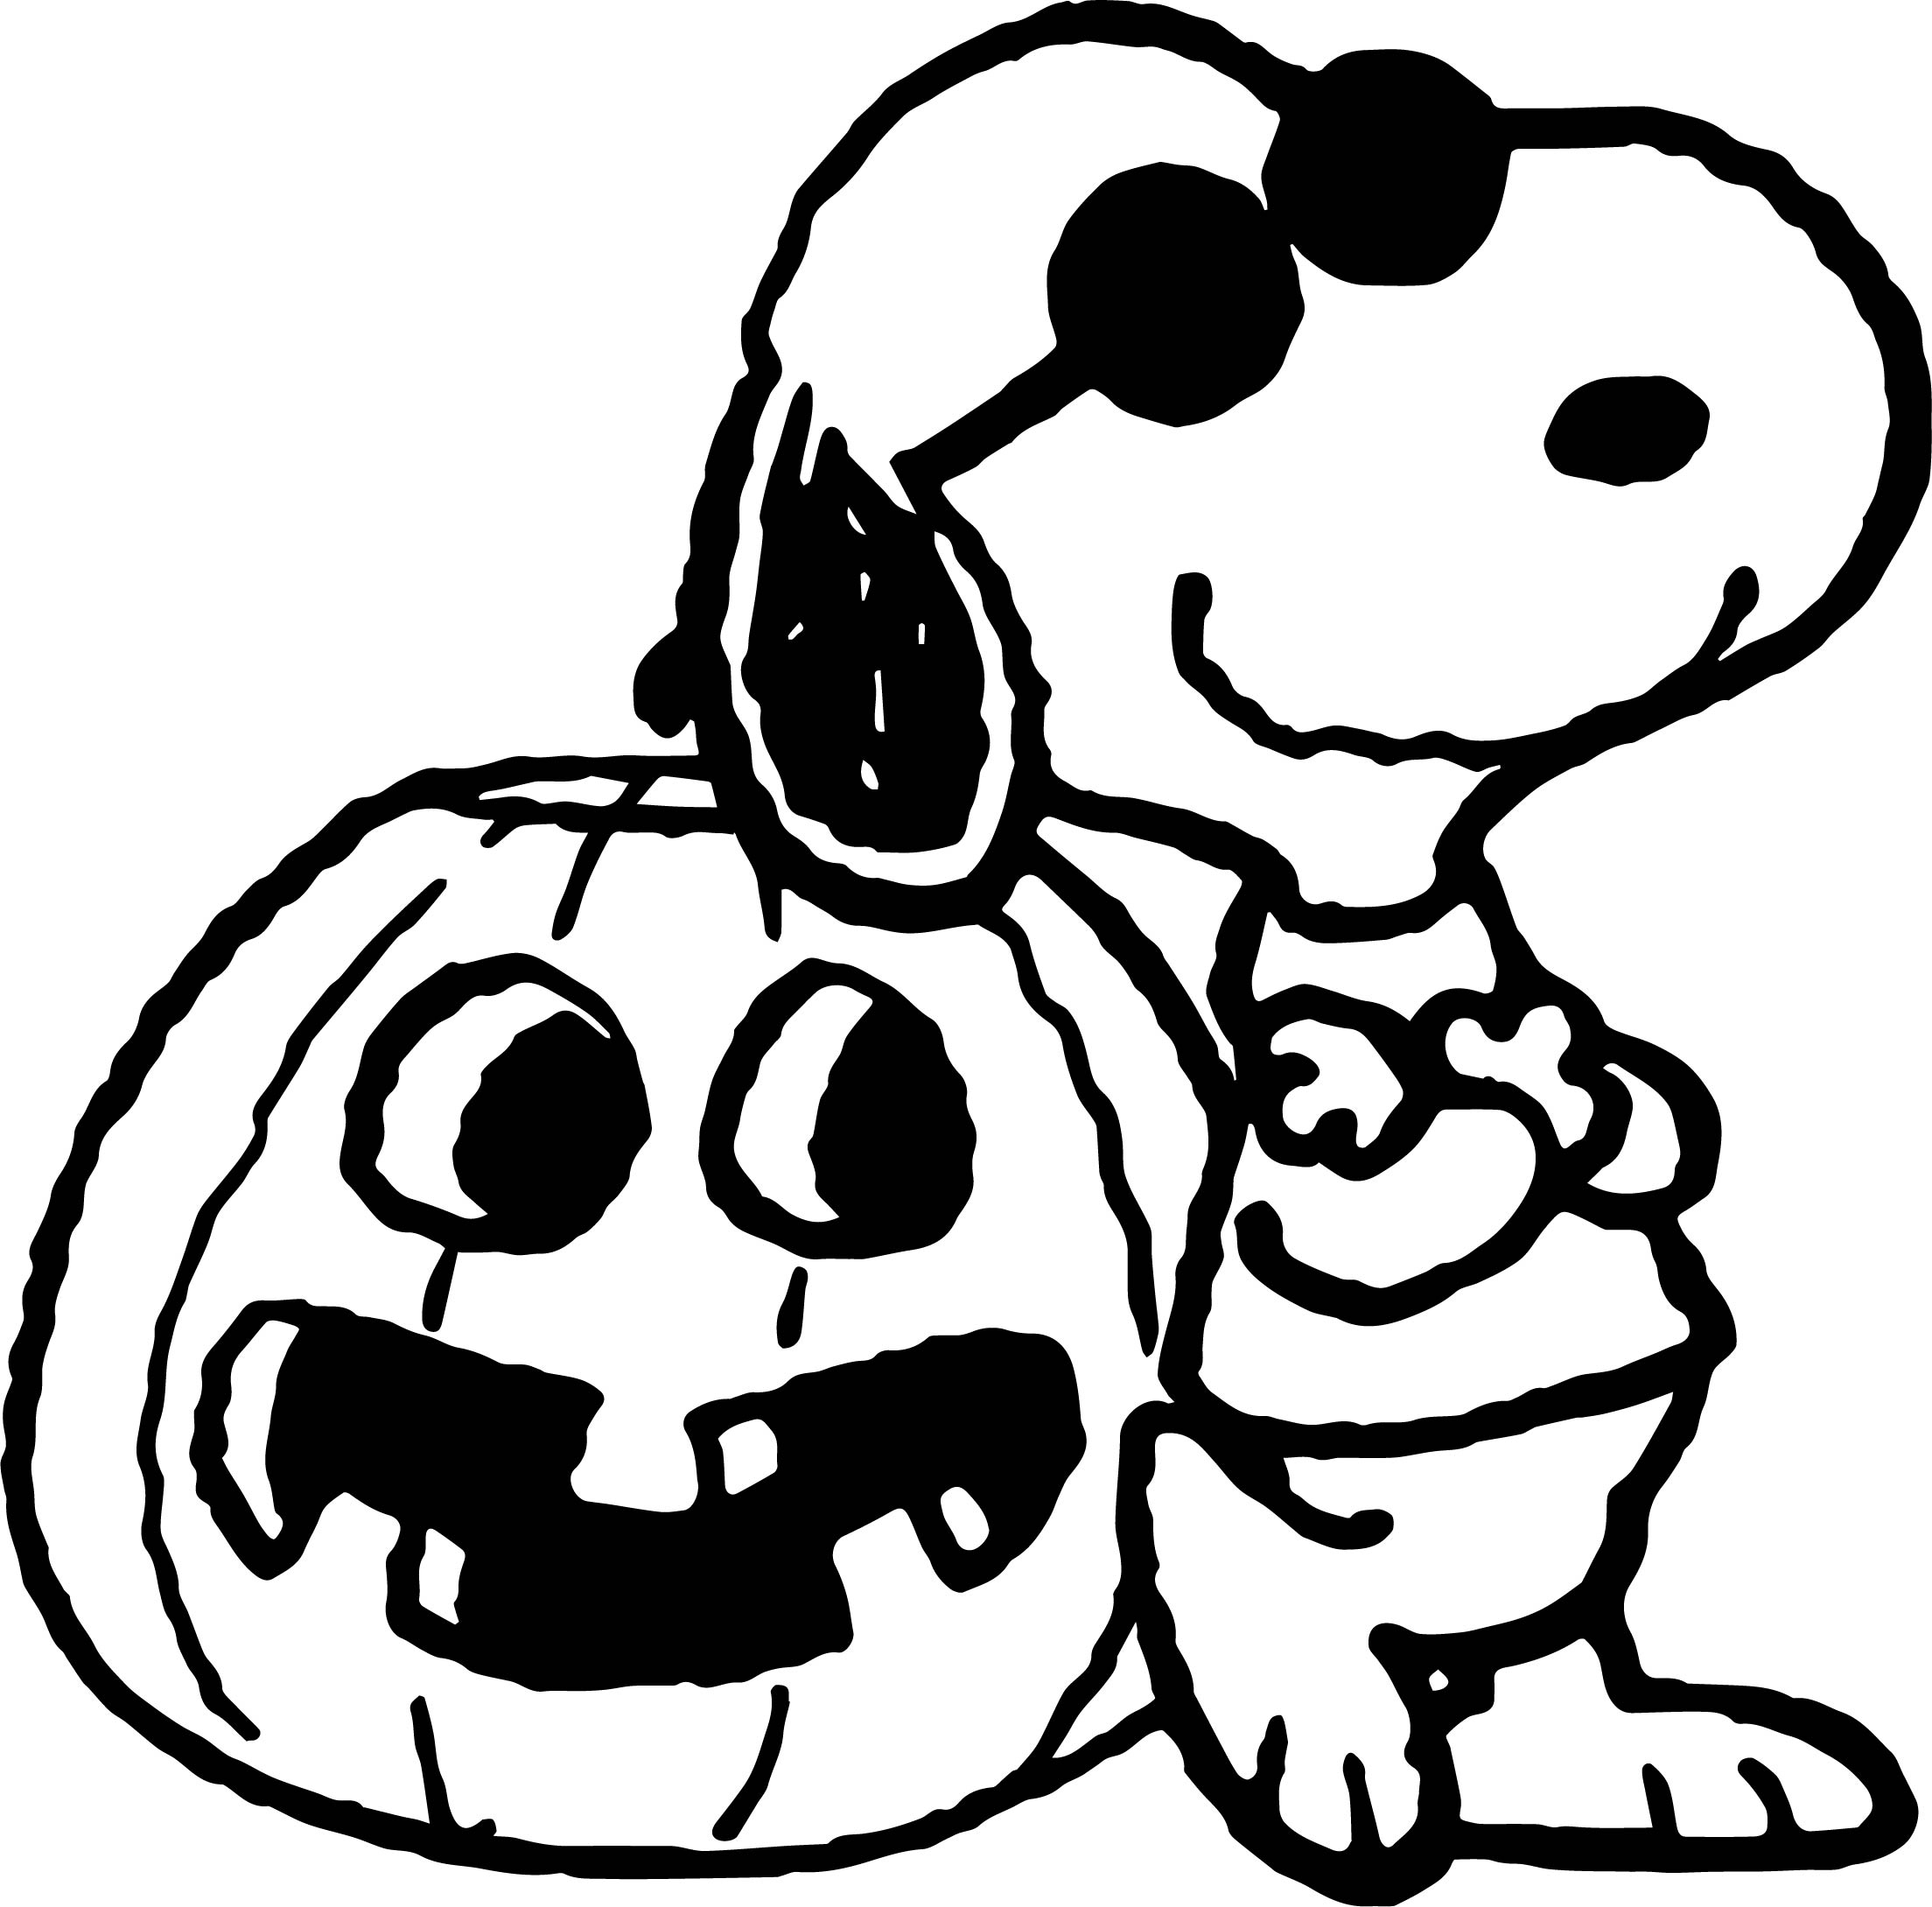 Snoopy Cartoon Halloween Pumpkin Coloring Page